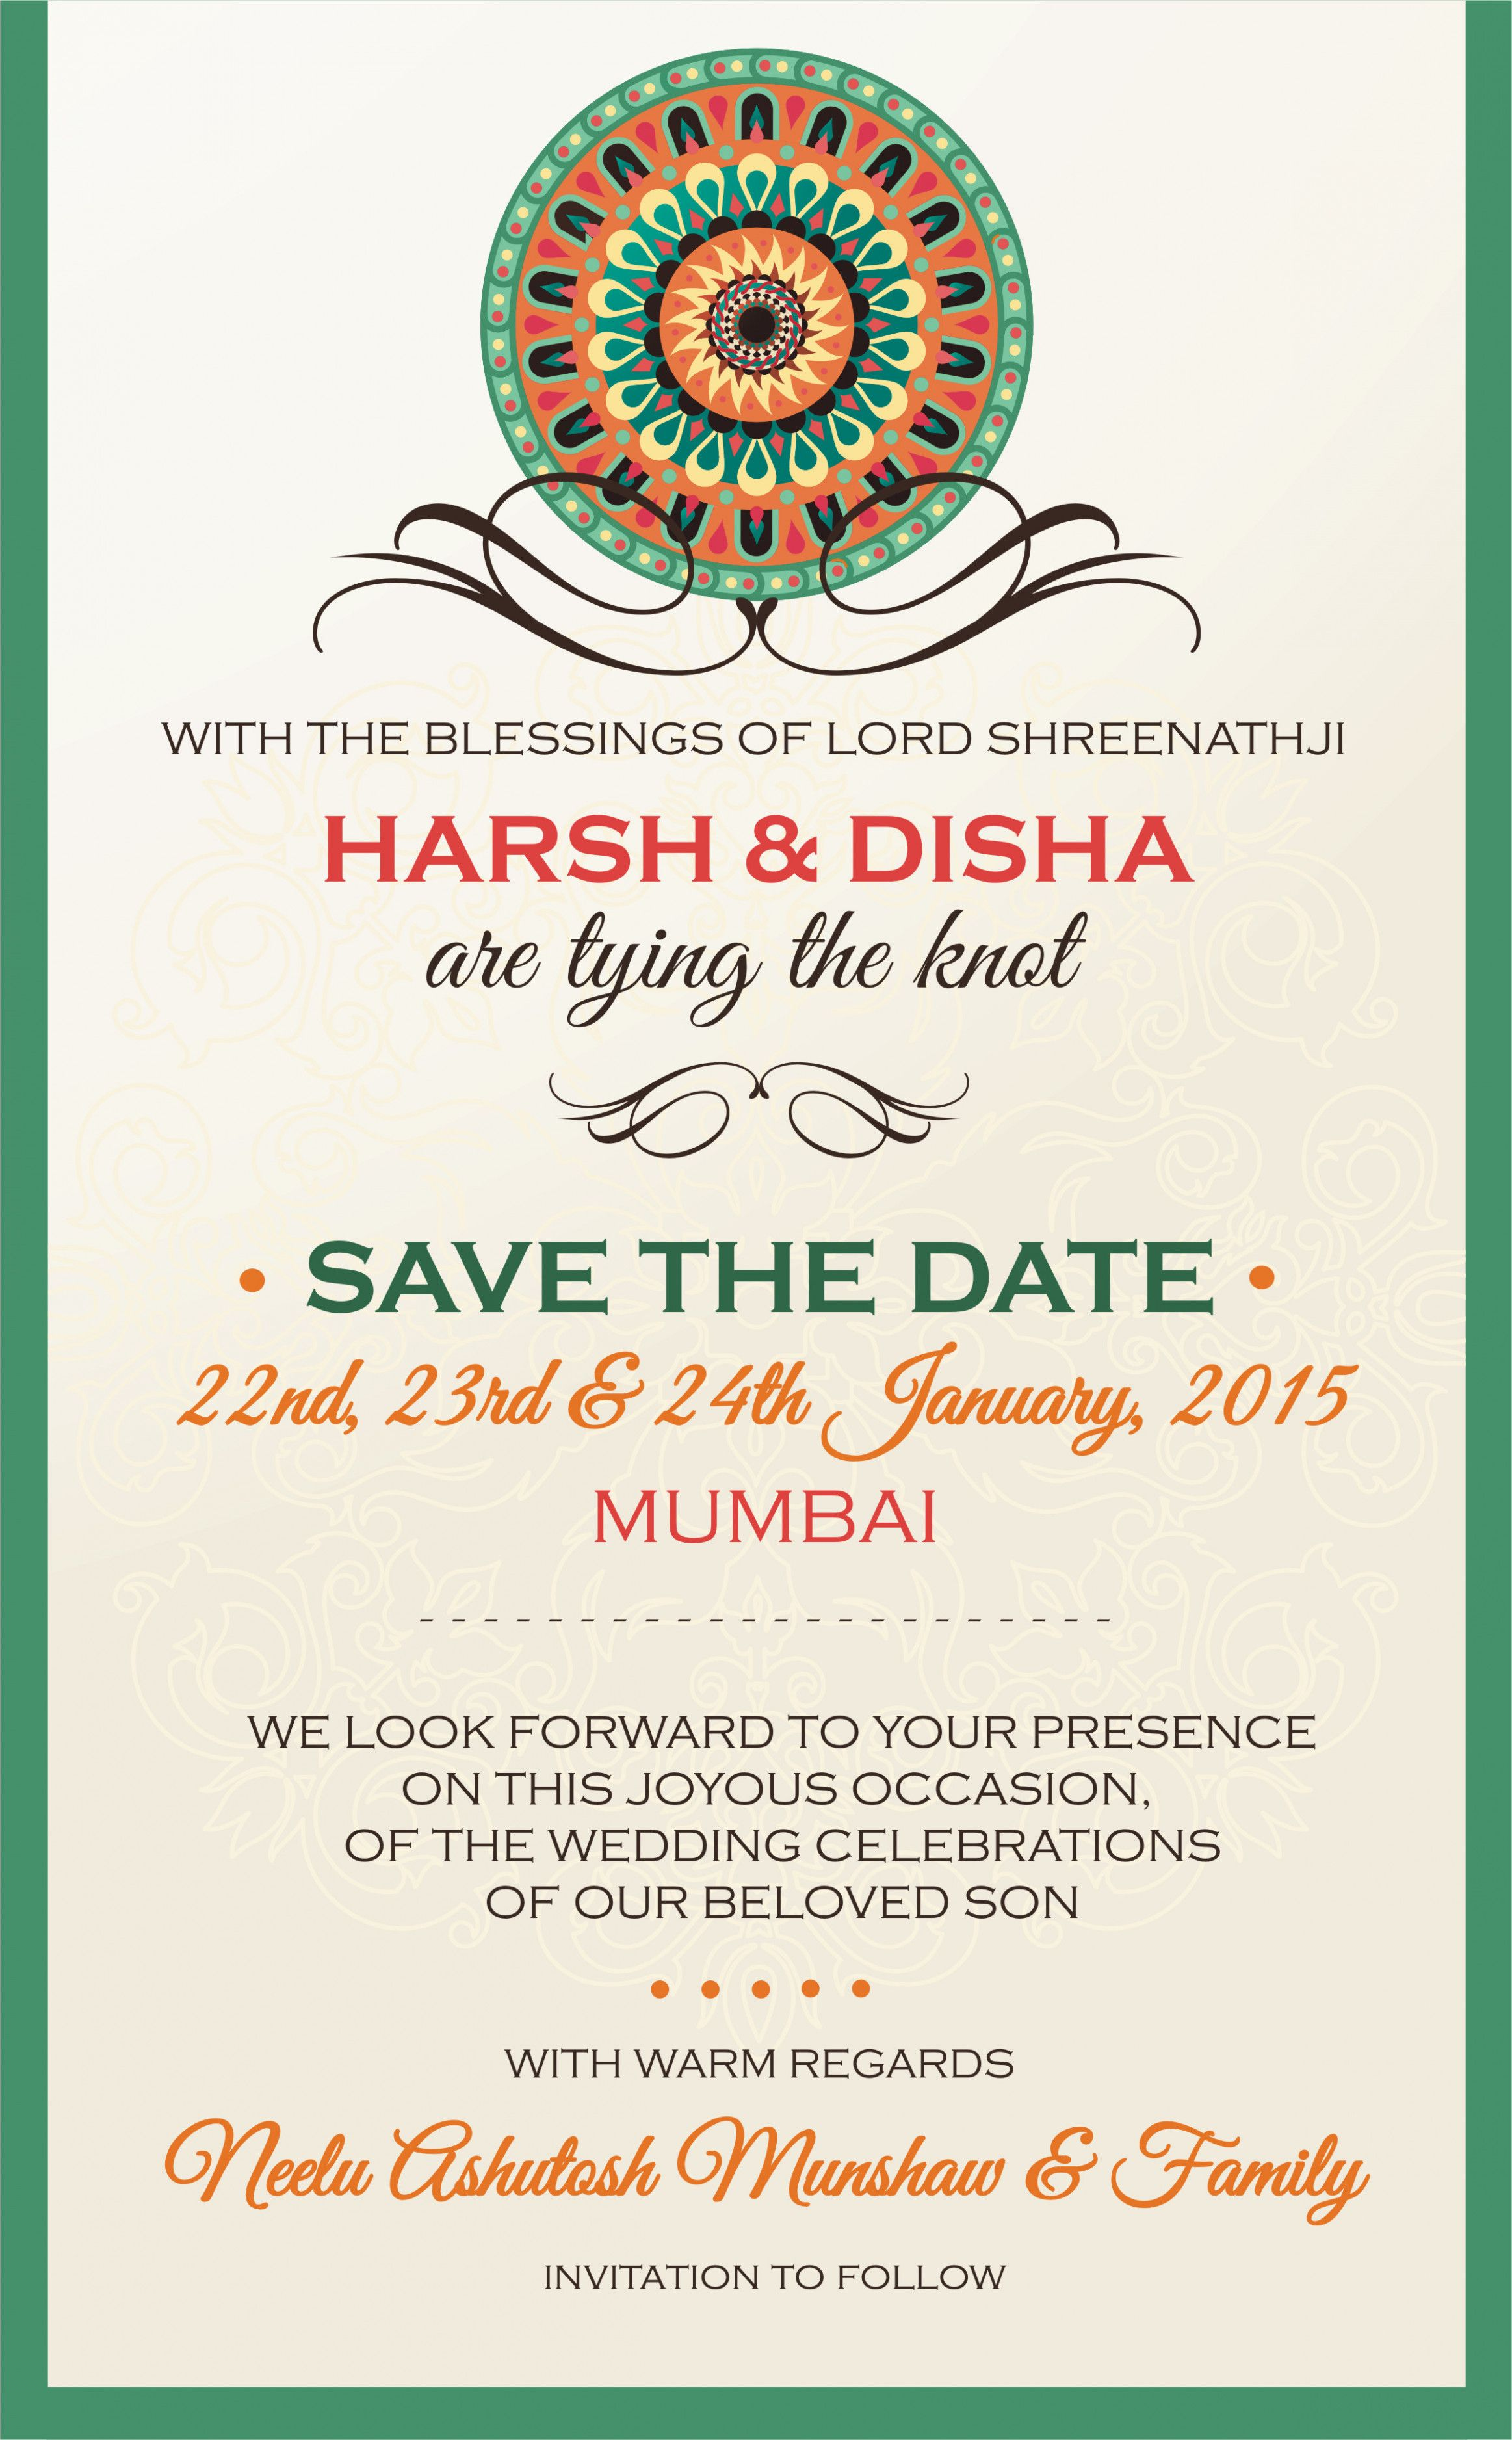 Wedding Invites Indian Save The Date Cards Indian Wedding Invitations Indian Wedding Invitation Cards Indian Wedding Cards